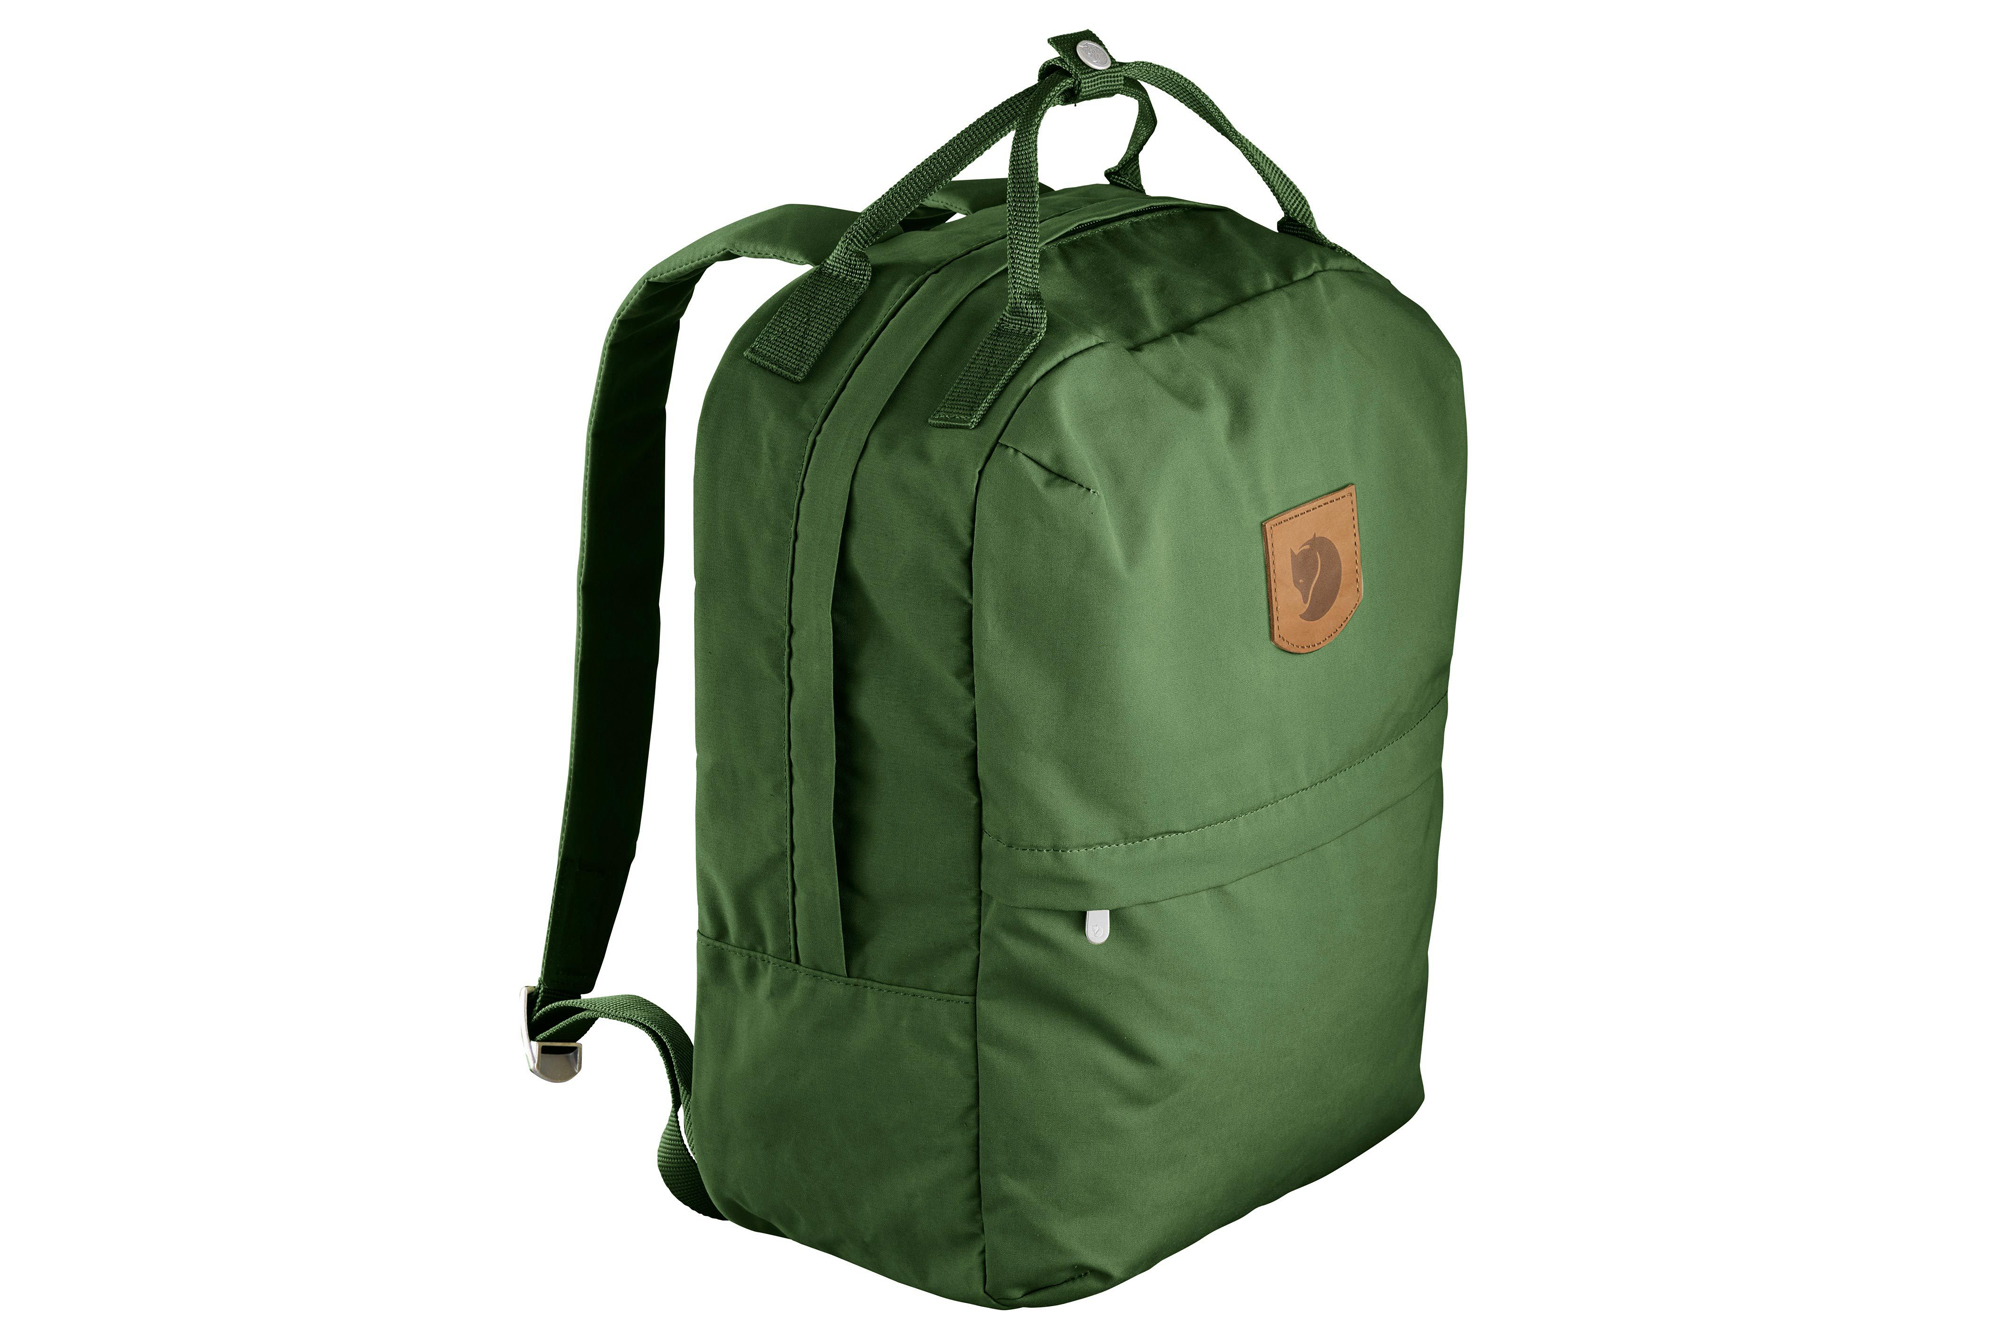 83a4289965d6 Lifestyle Outdoor  10 Backpacks for Work